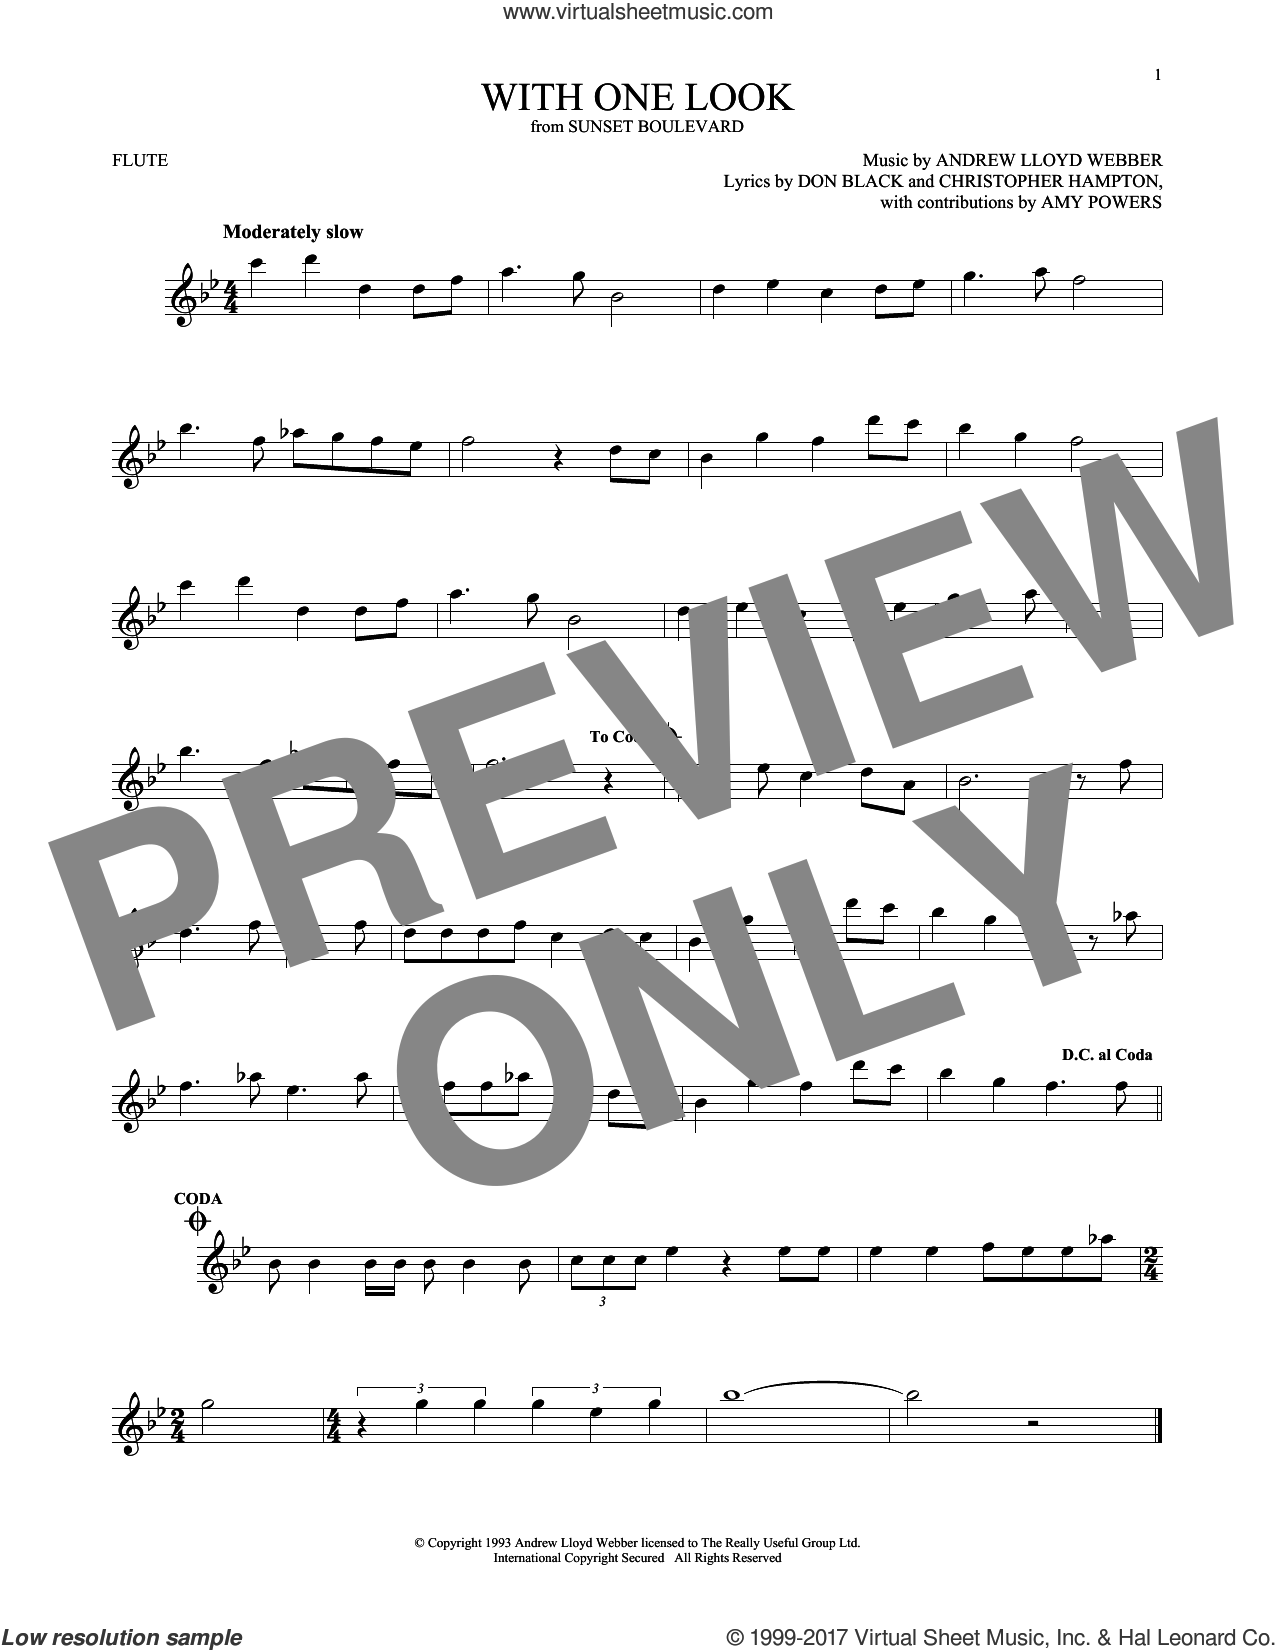 With One Look sheet music for flute solo by Andrew Lloyd Webber, Christopher Hampton and Don Black, classical score, intermediate skill level